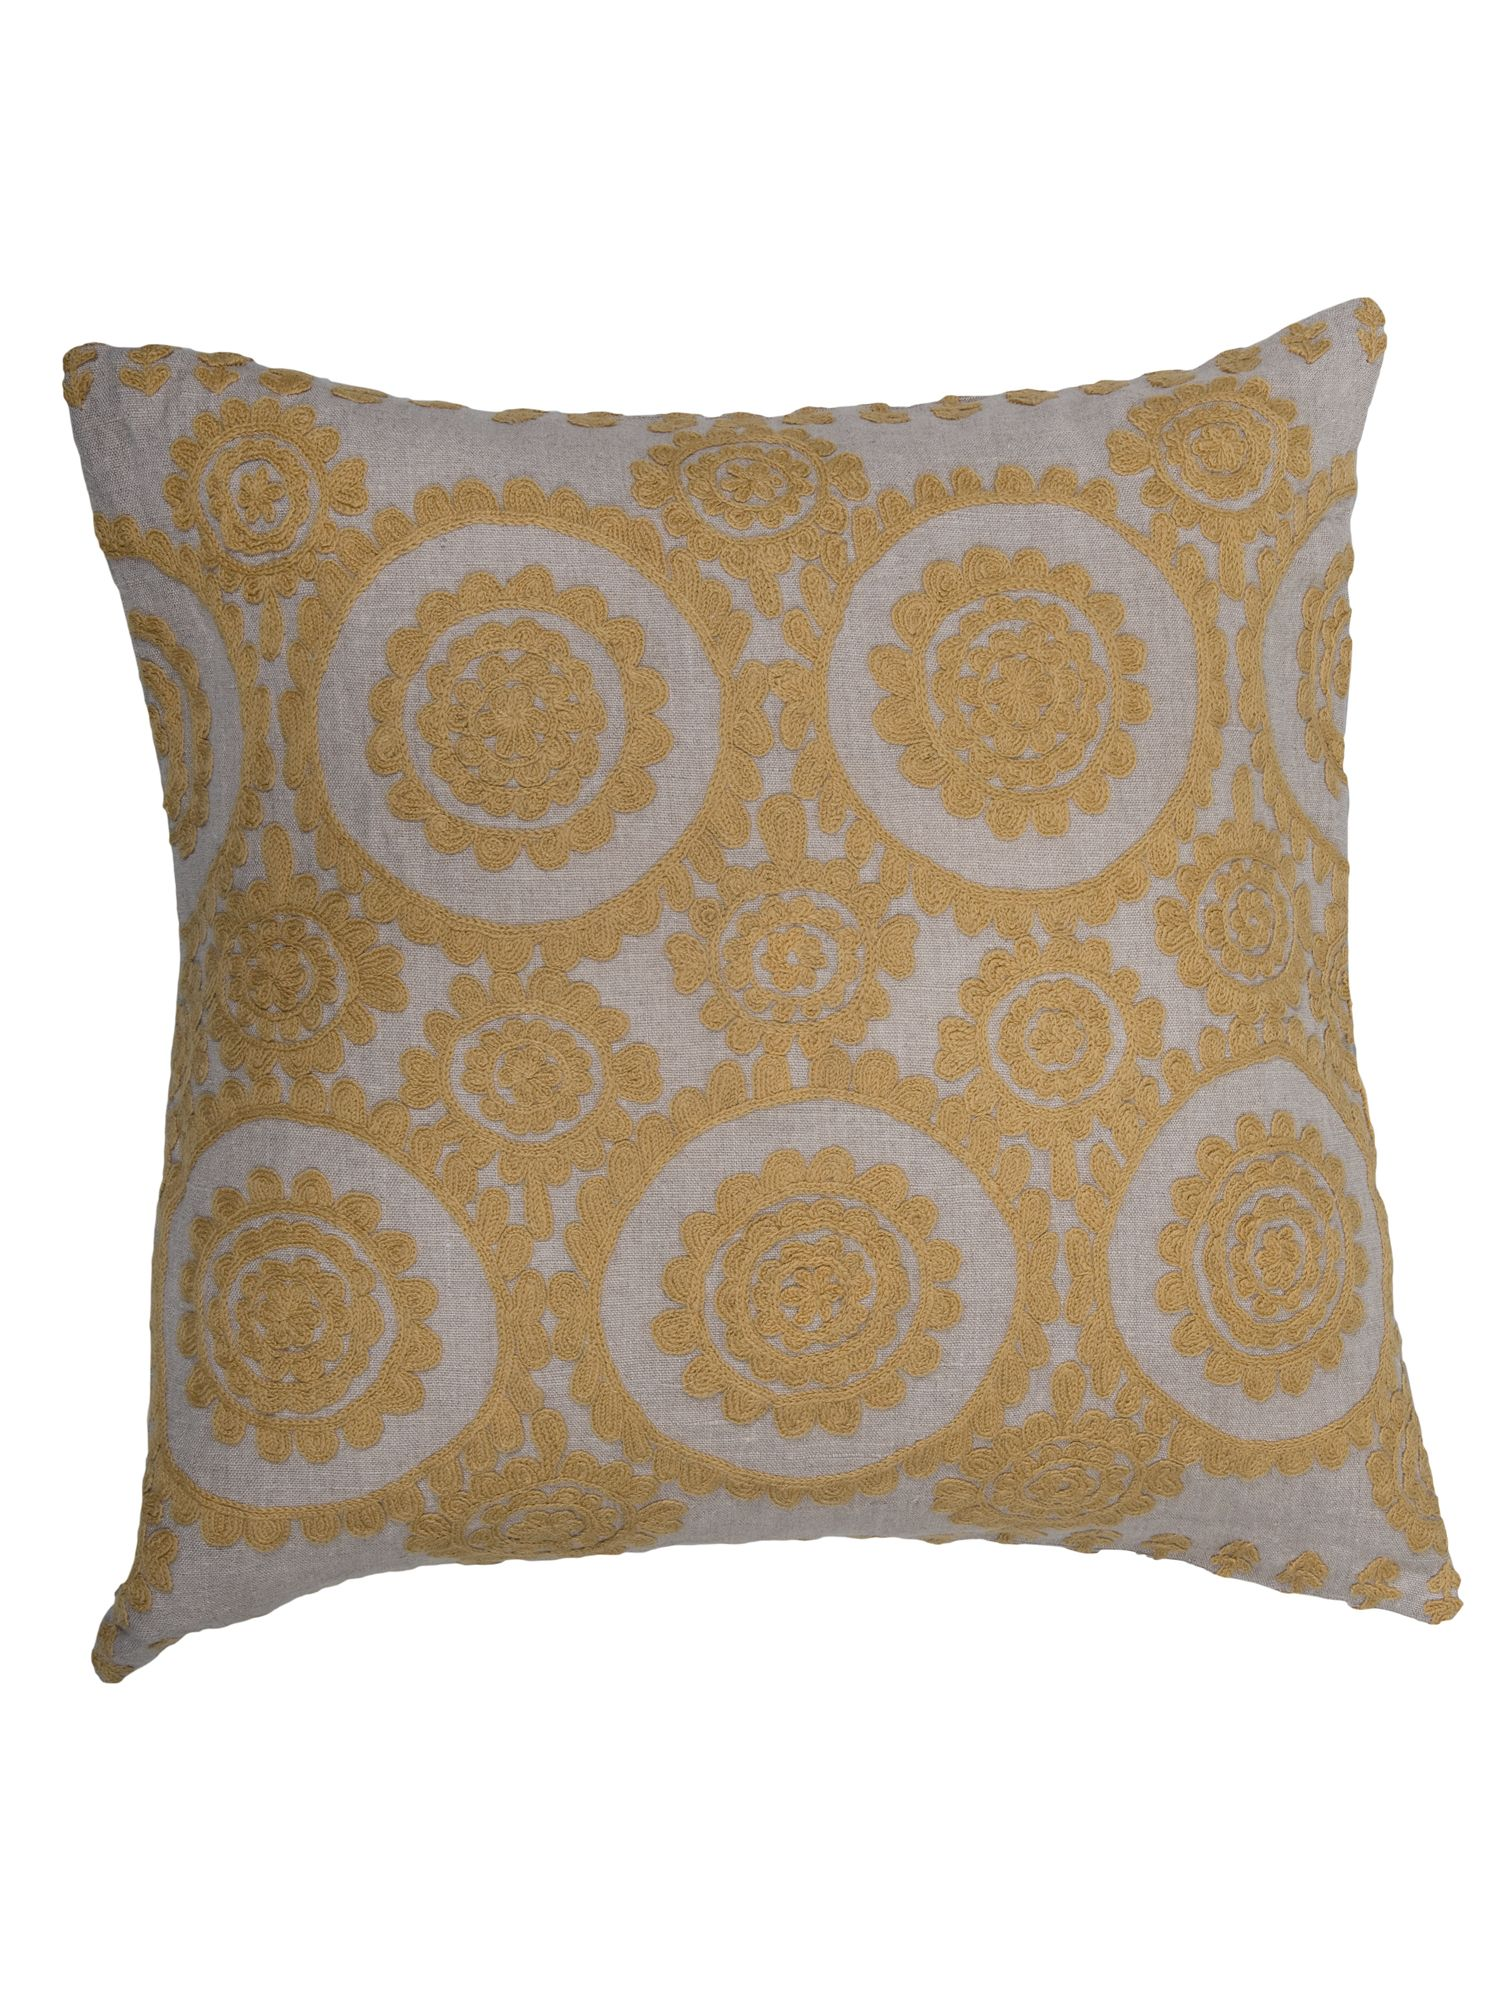 Medina cushion in charteuse 60x60cm